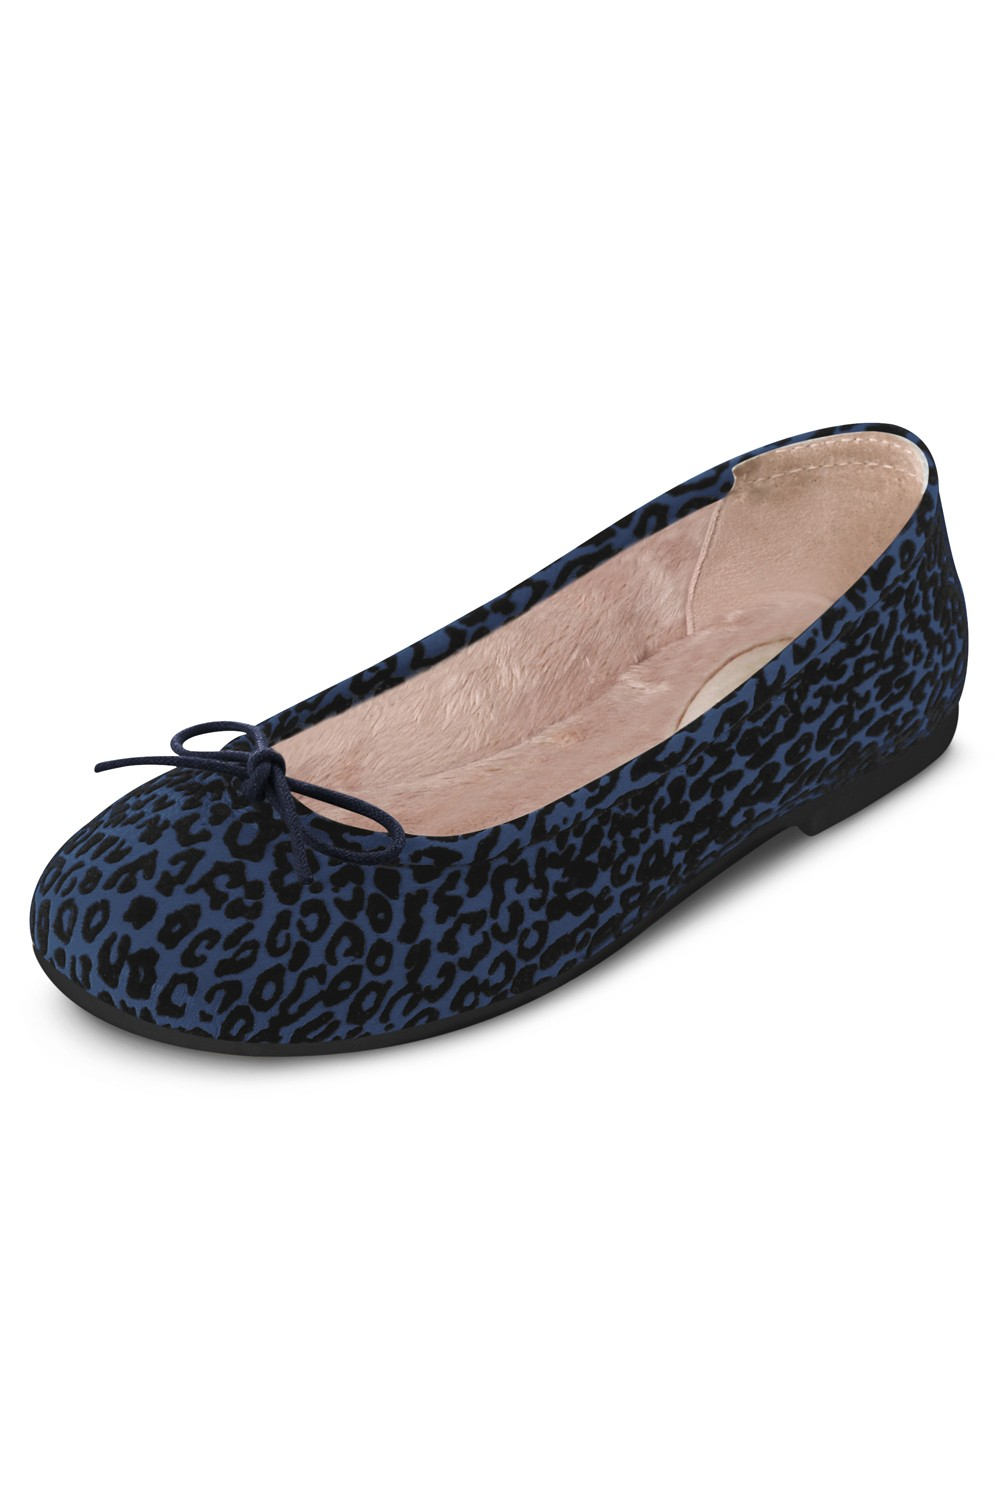 Arabella Leopard Fur Lining - Girls Girls Fashion Shoes